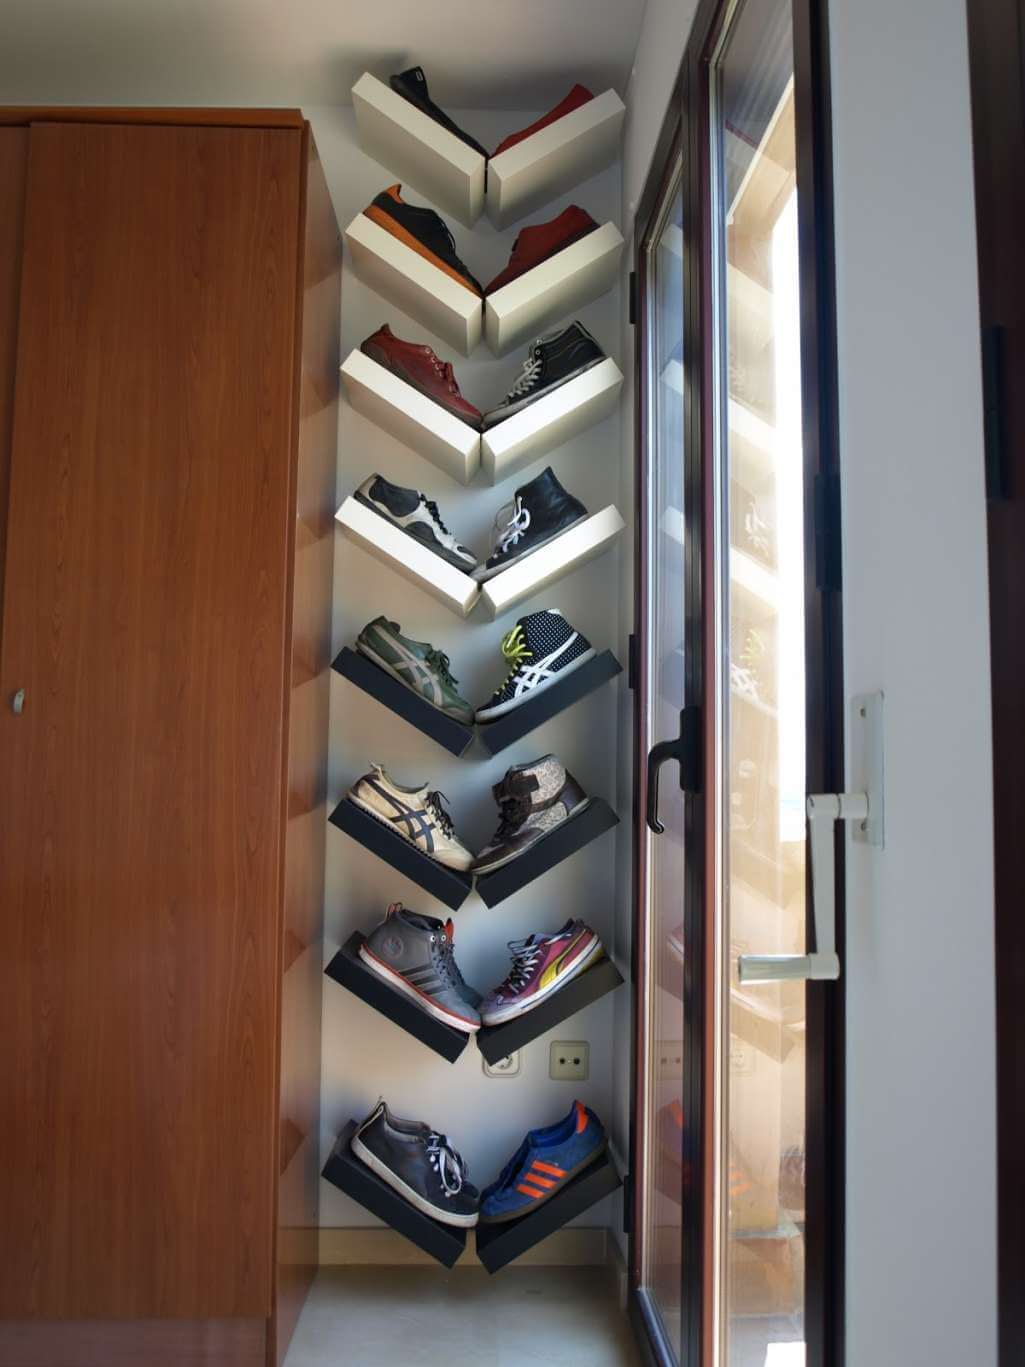 15 clever narrow and vertical shoe storage ideas - Vertical Shoe Rack